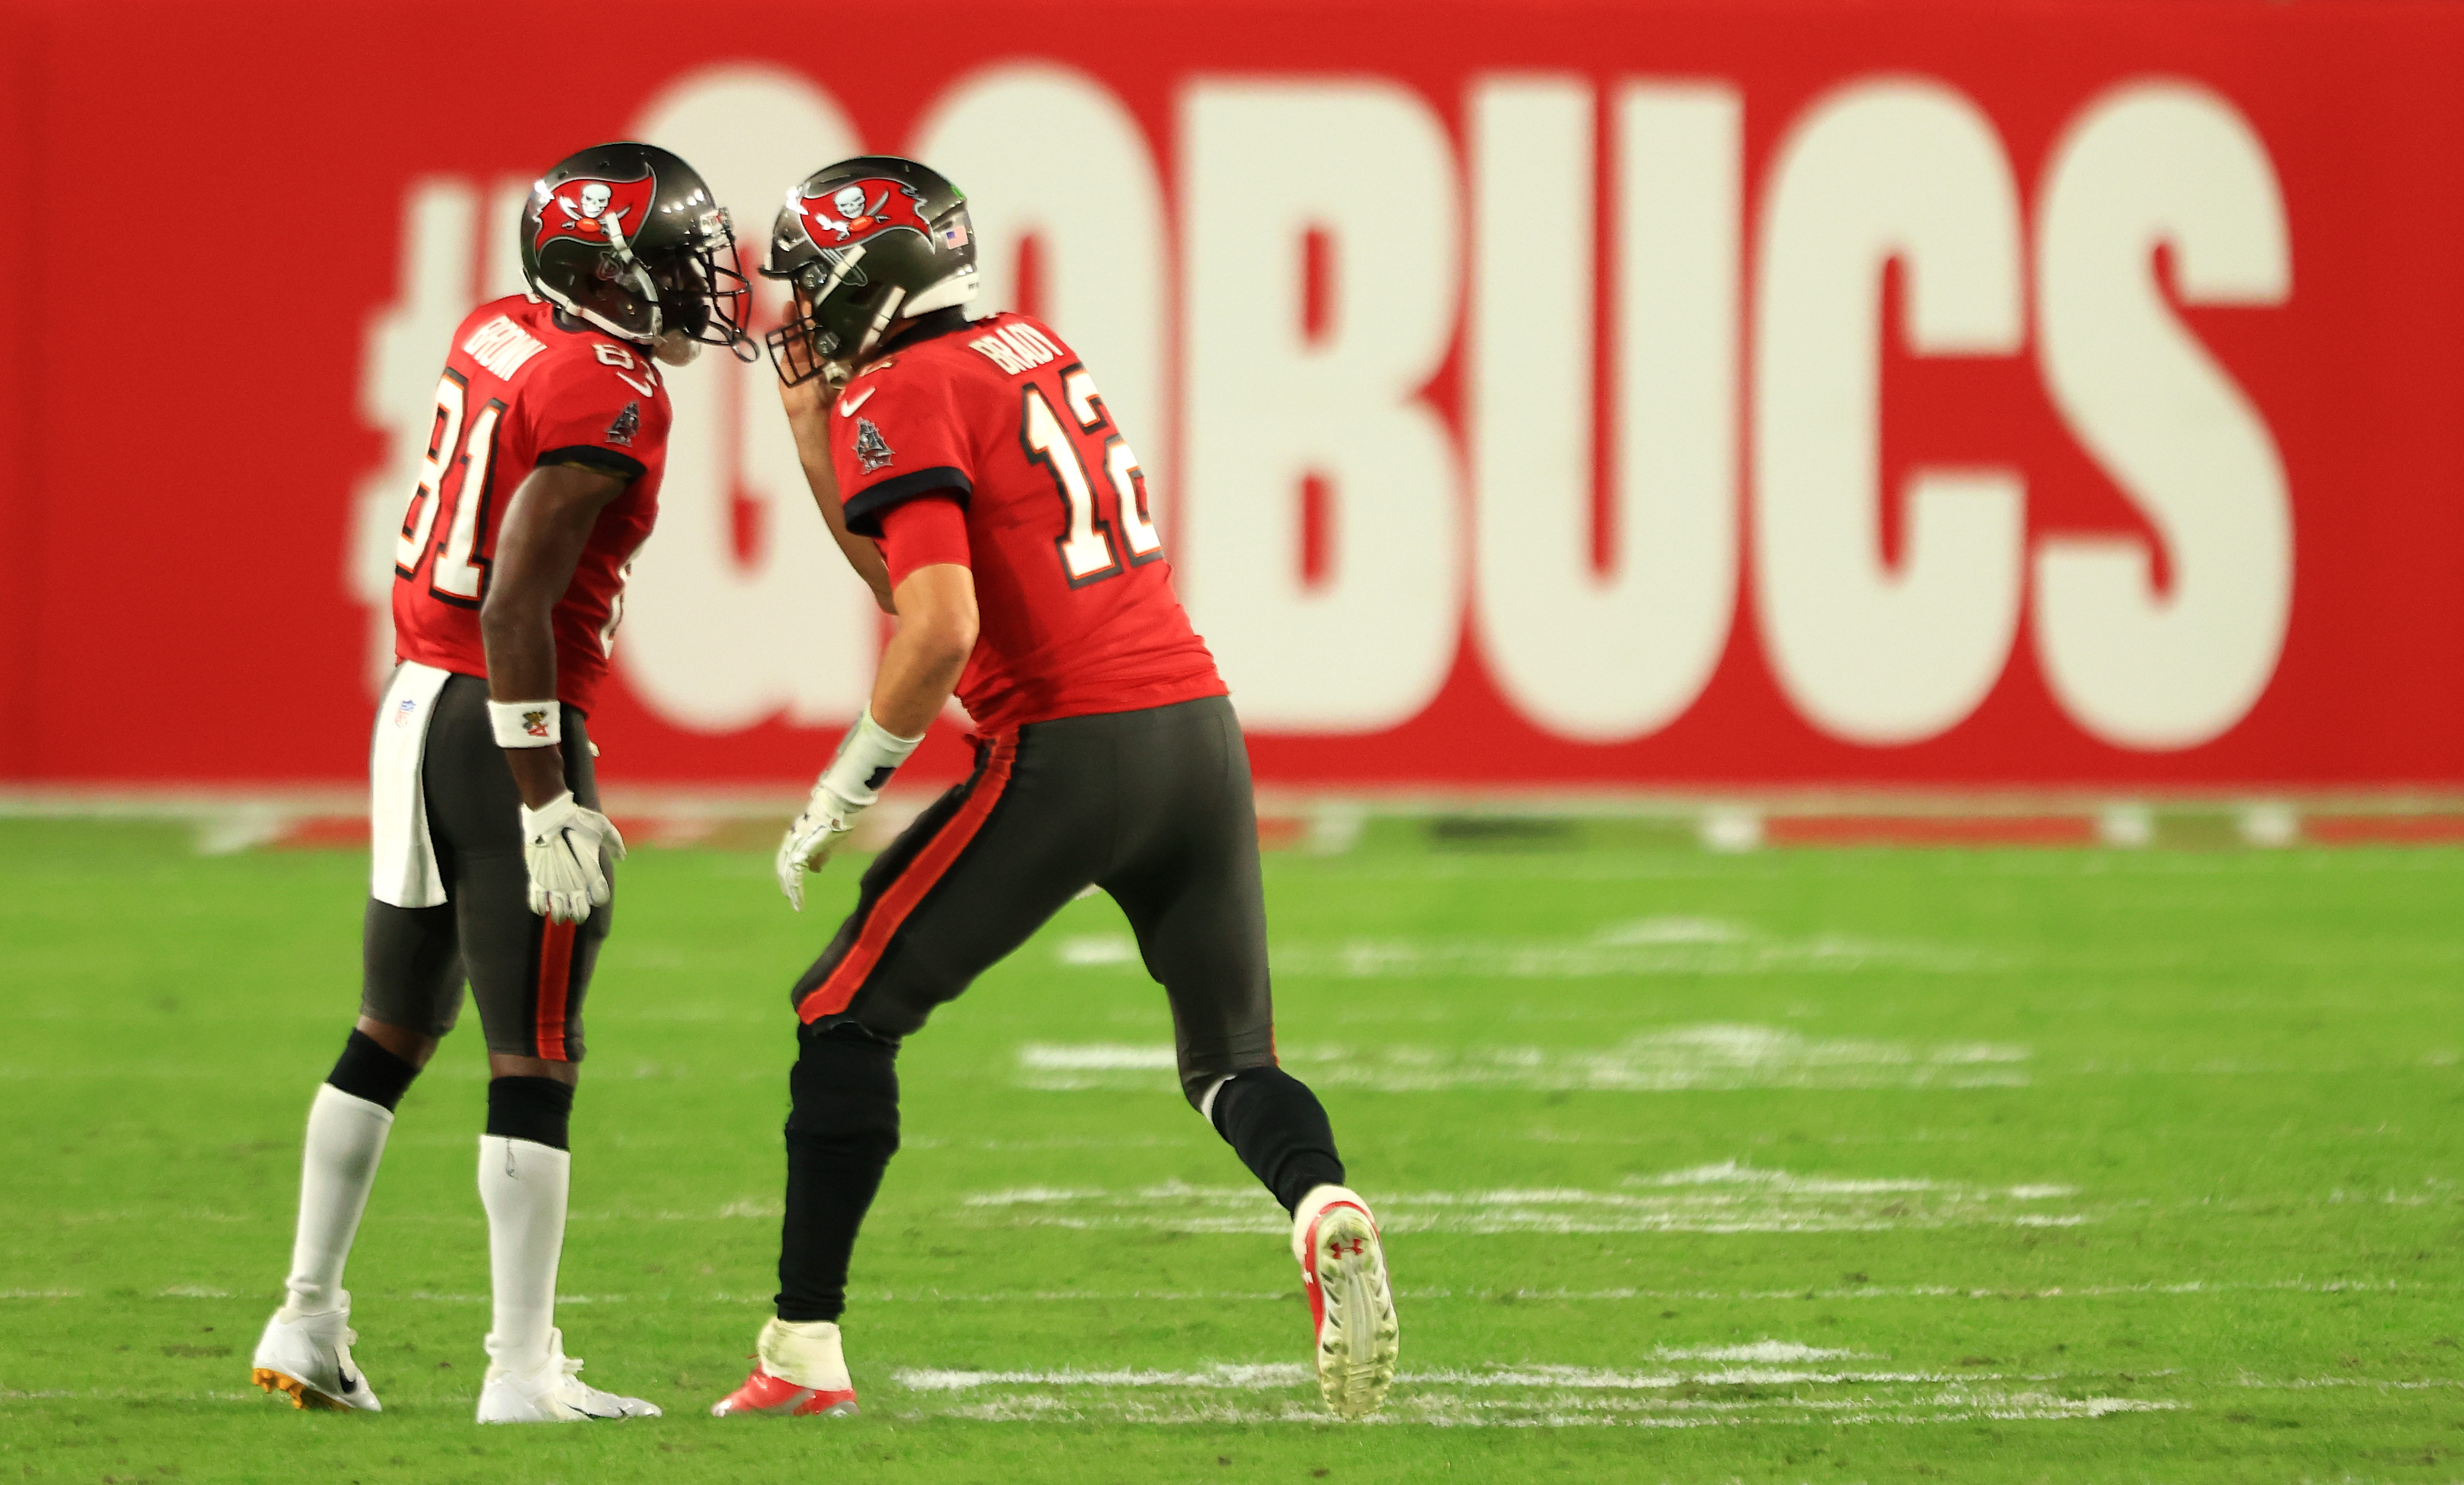 Tom Brady #12 and Antonio Brown #81 of the Tampa Bay Buccaneers speak in the fourth quarter during their game against the Kansas City Chiefs at Raymond James Stadium on November 29, 2020 in Tampa, Florida.